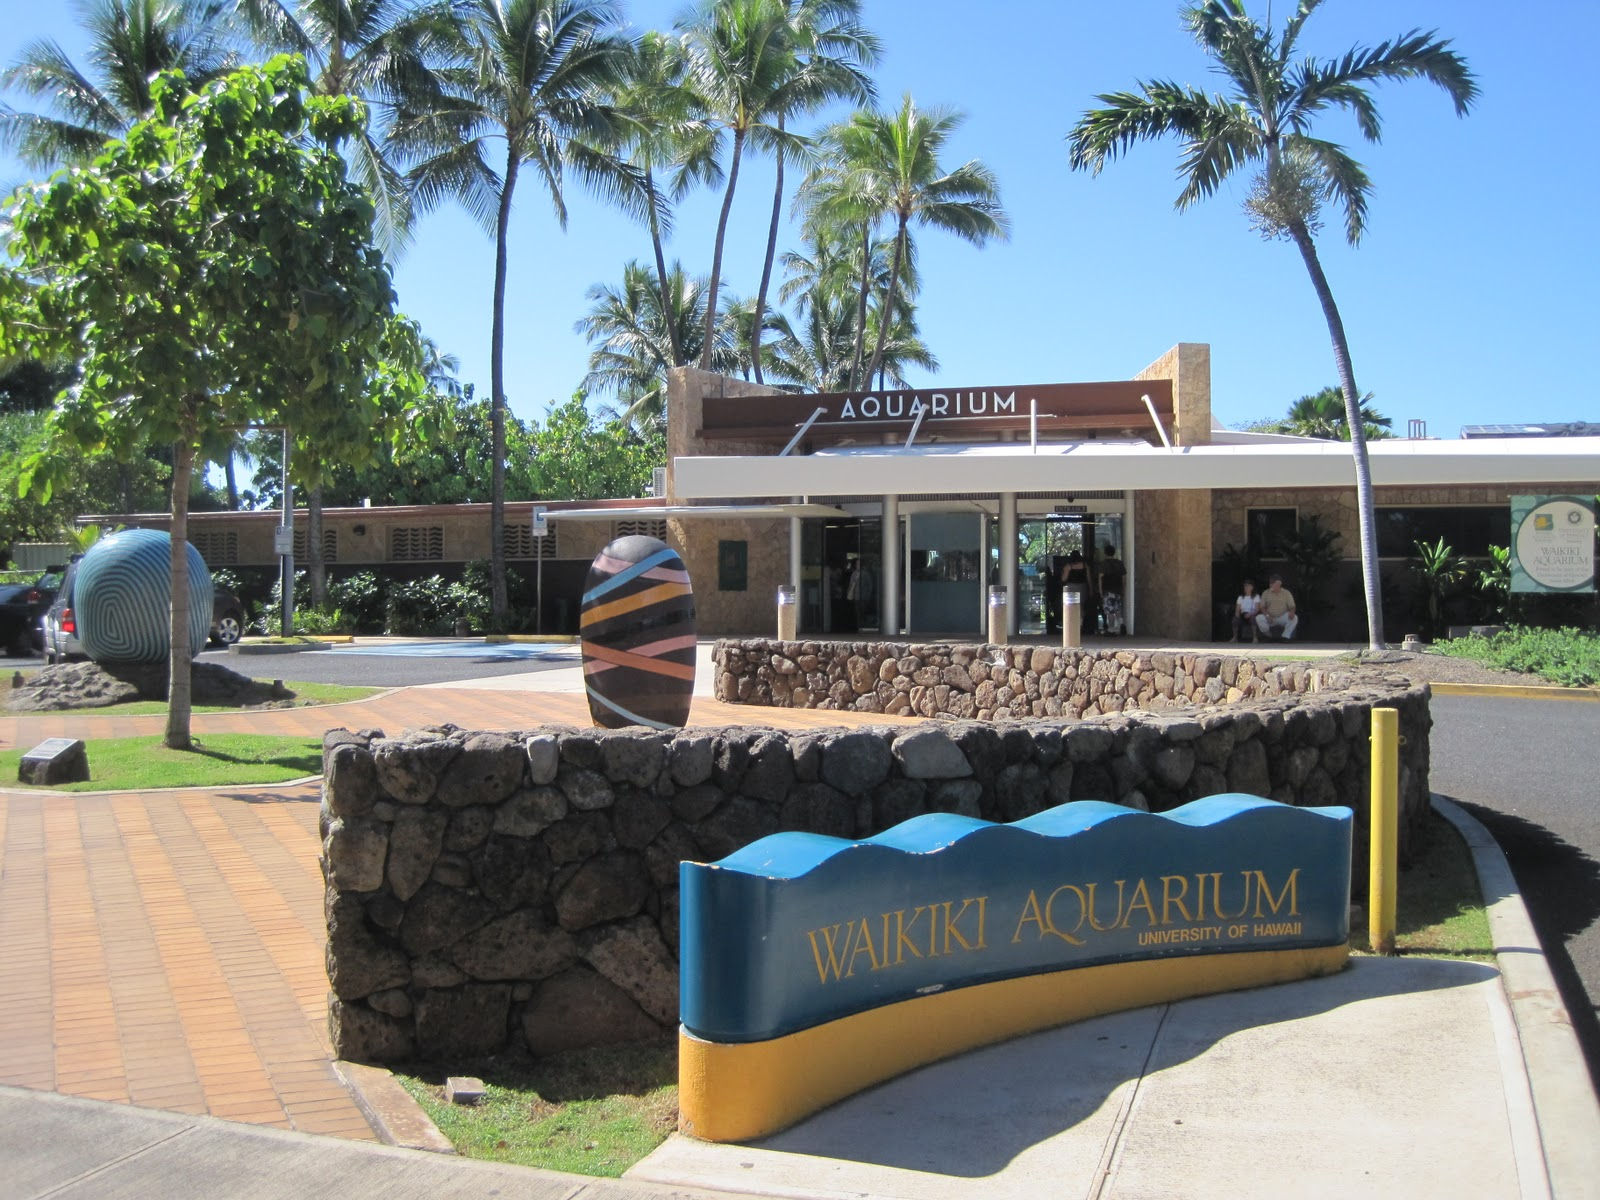 Waikiki Aquarium - Honolulu, Hawaii